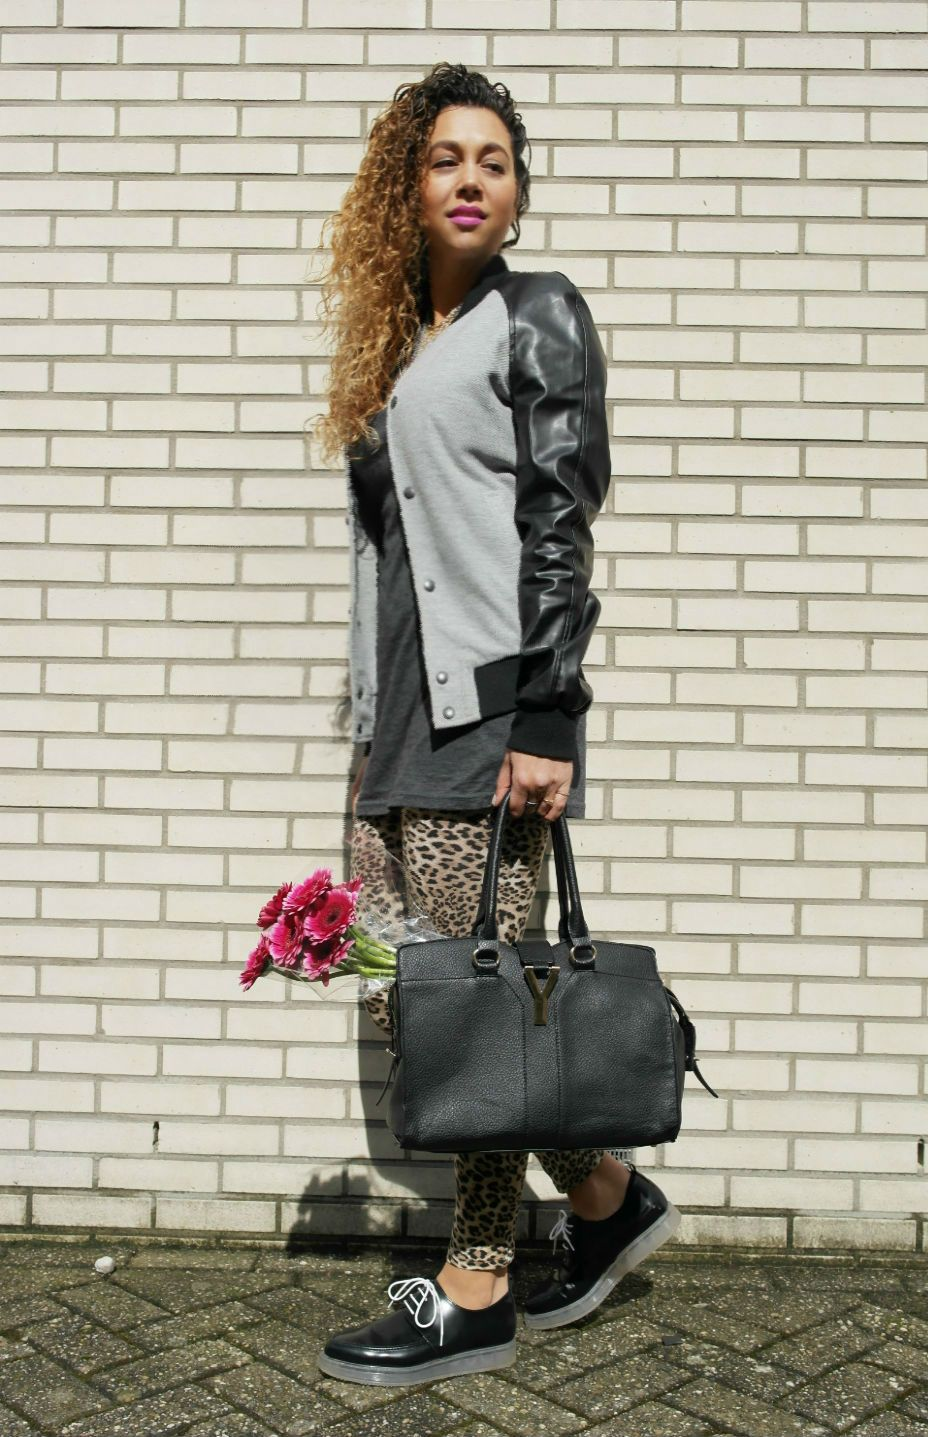 http://www.missiontostyle.nl/2014/03/my-style-ill-bring-you-flowers.html  Fashion and Style blogger MissionToStyle